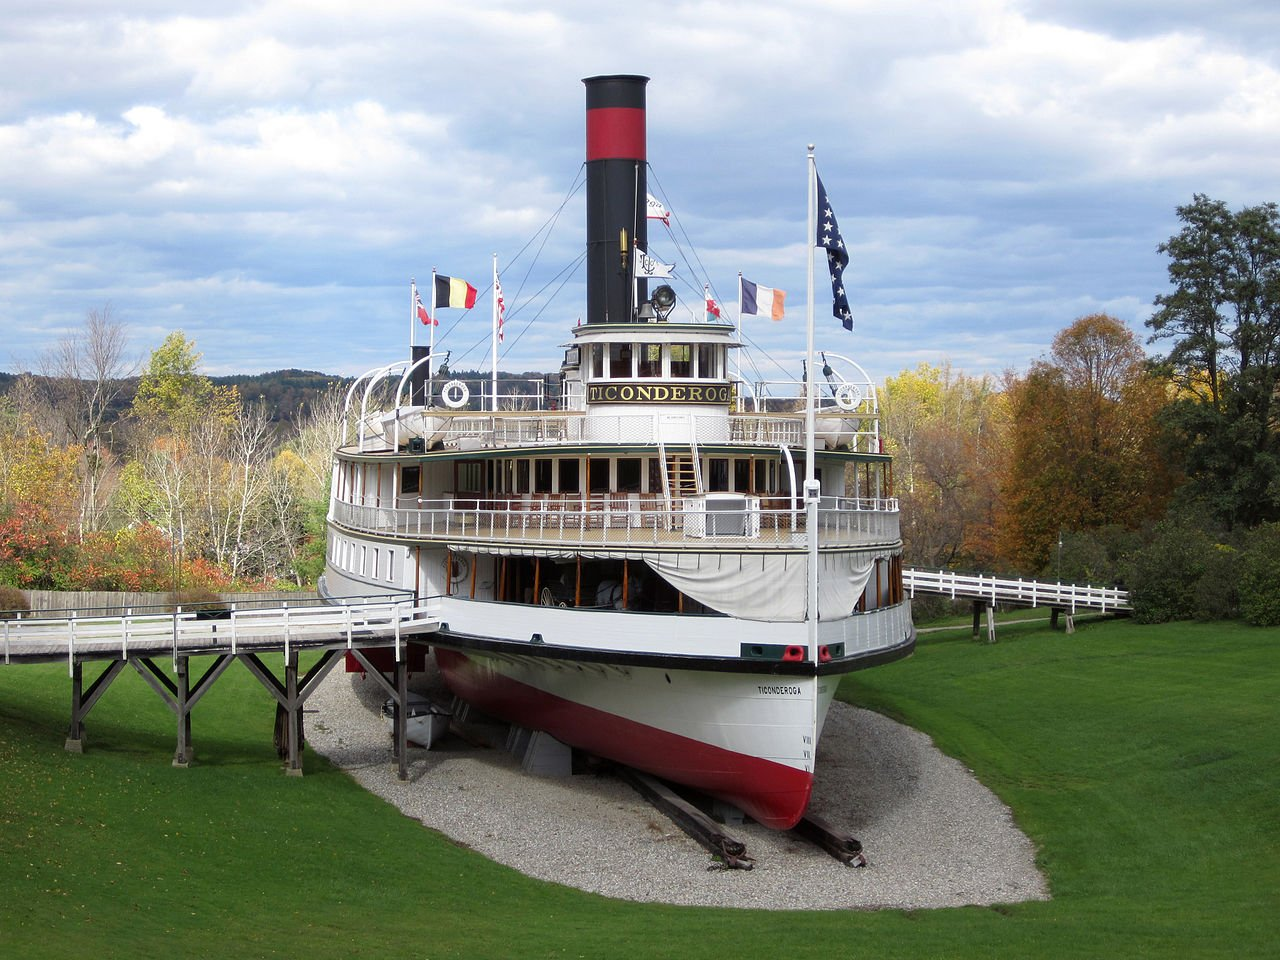 The steamboat Ticonderoga was built in 1906 and operated until 1960.